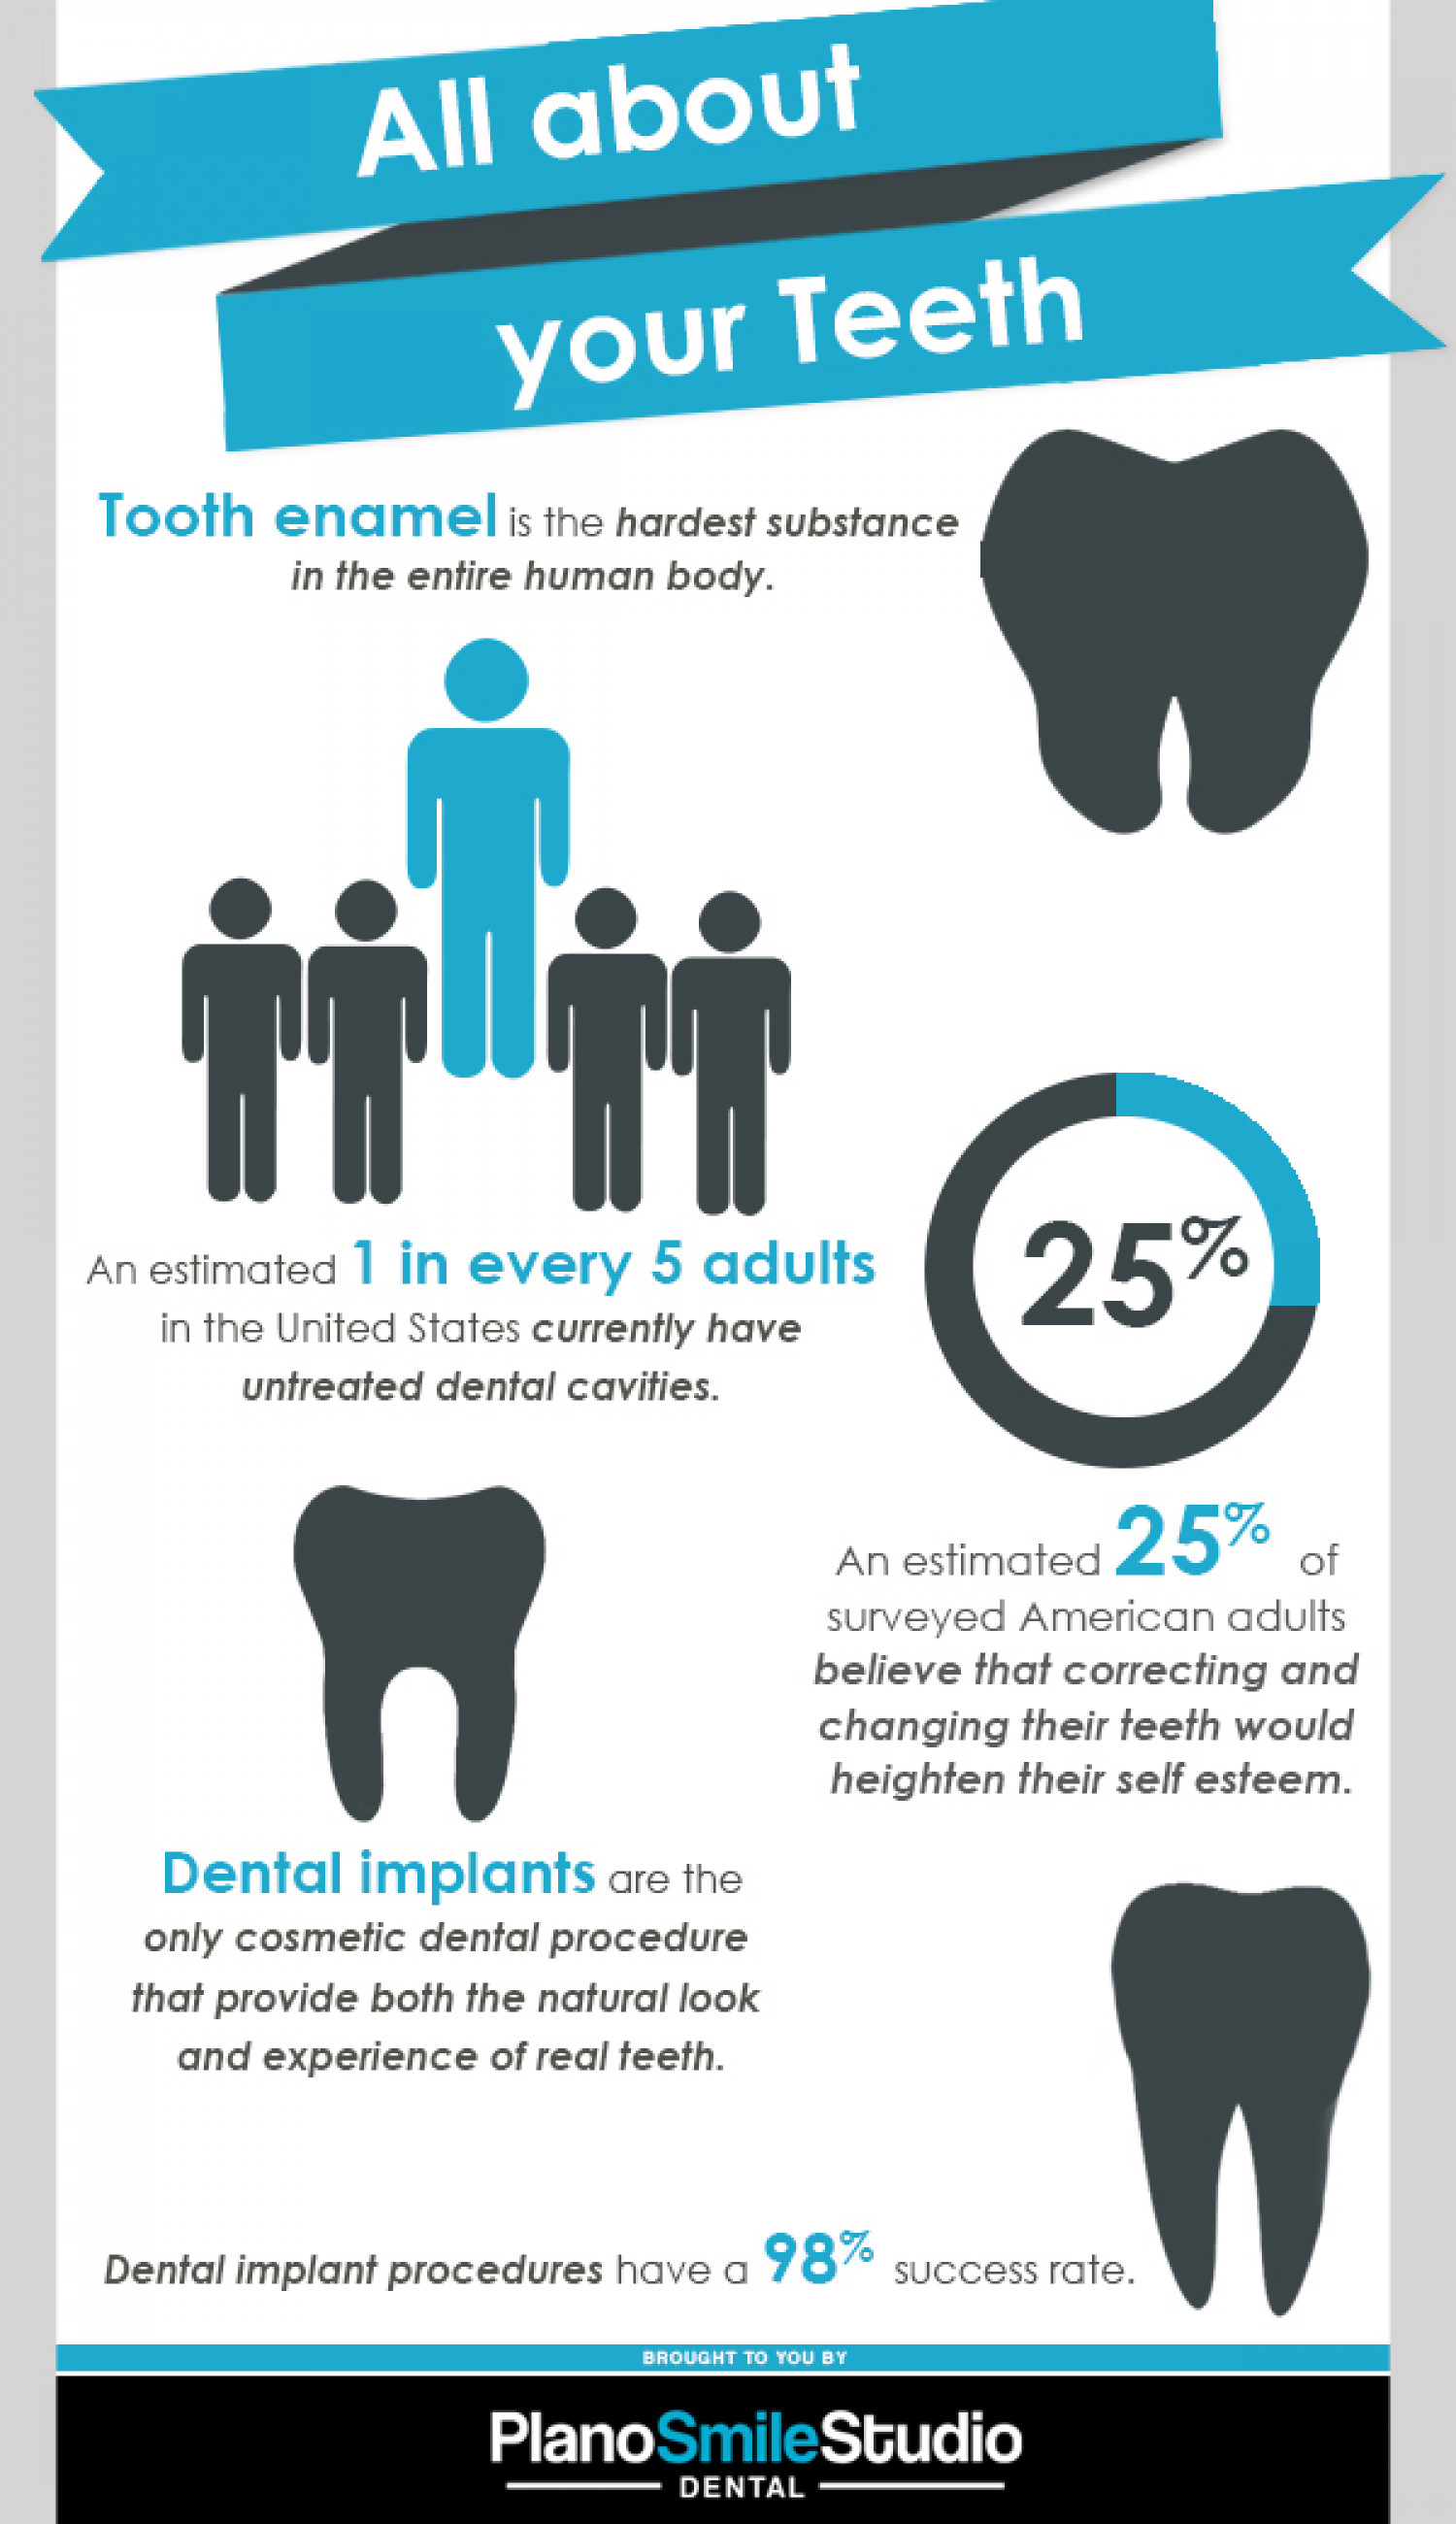 All About Your Teeth Infographic